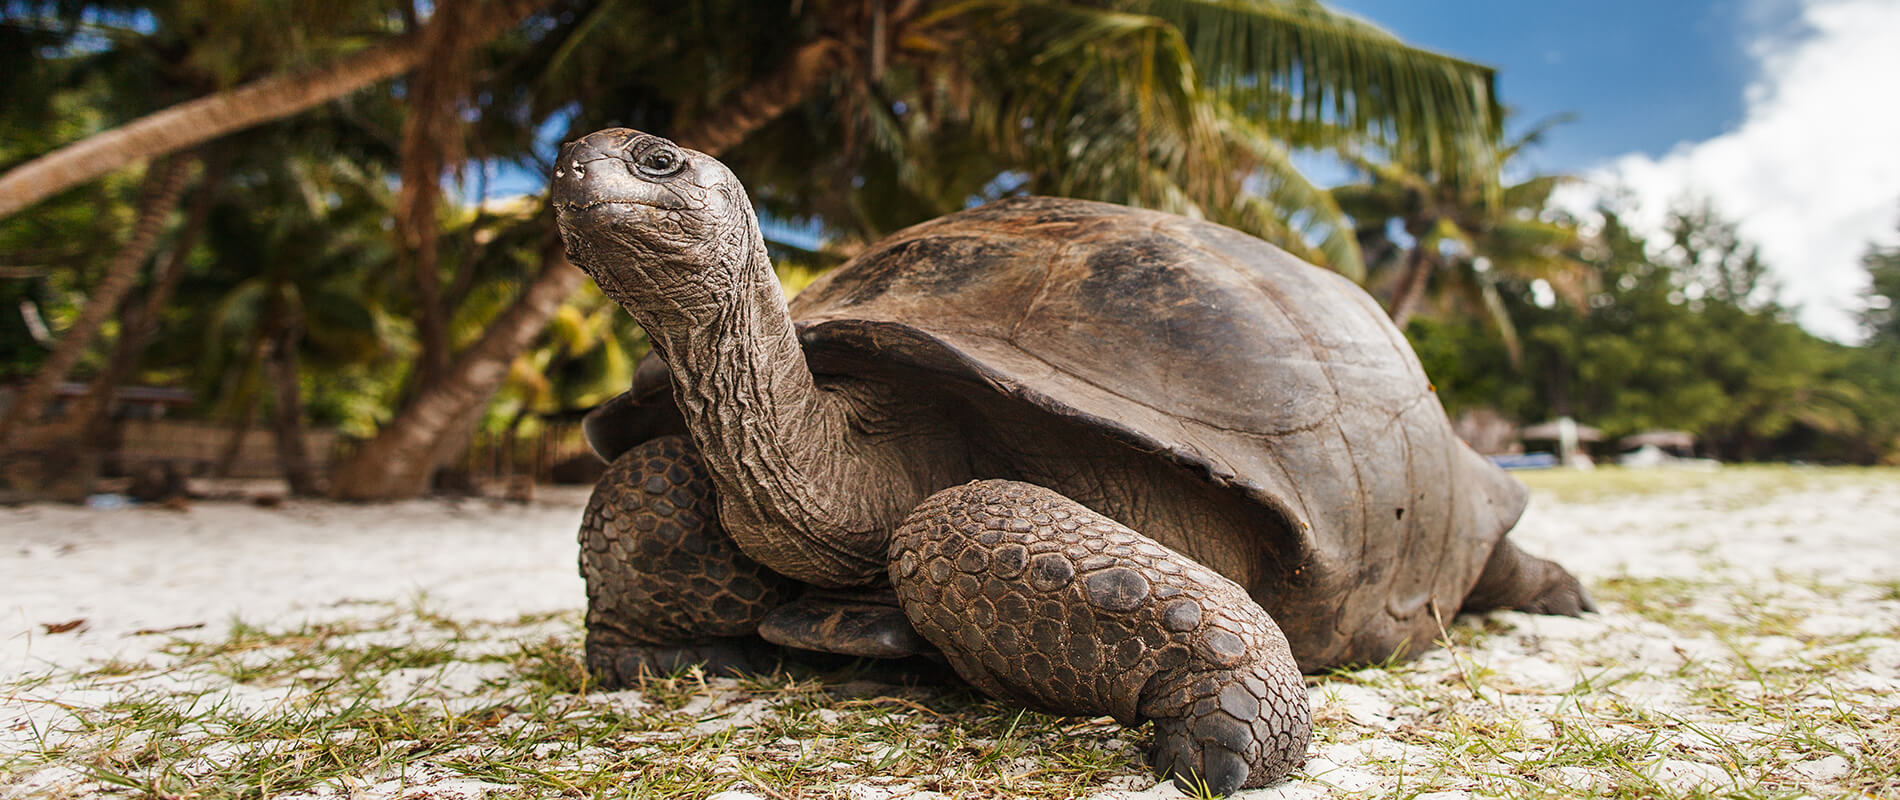 Curieuse Island, a Paradise of Giant Tortoises